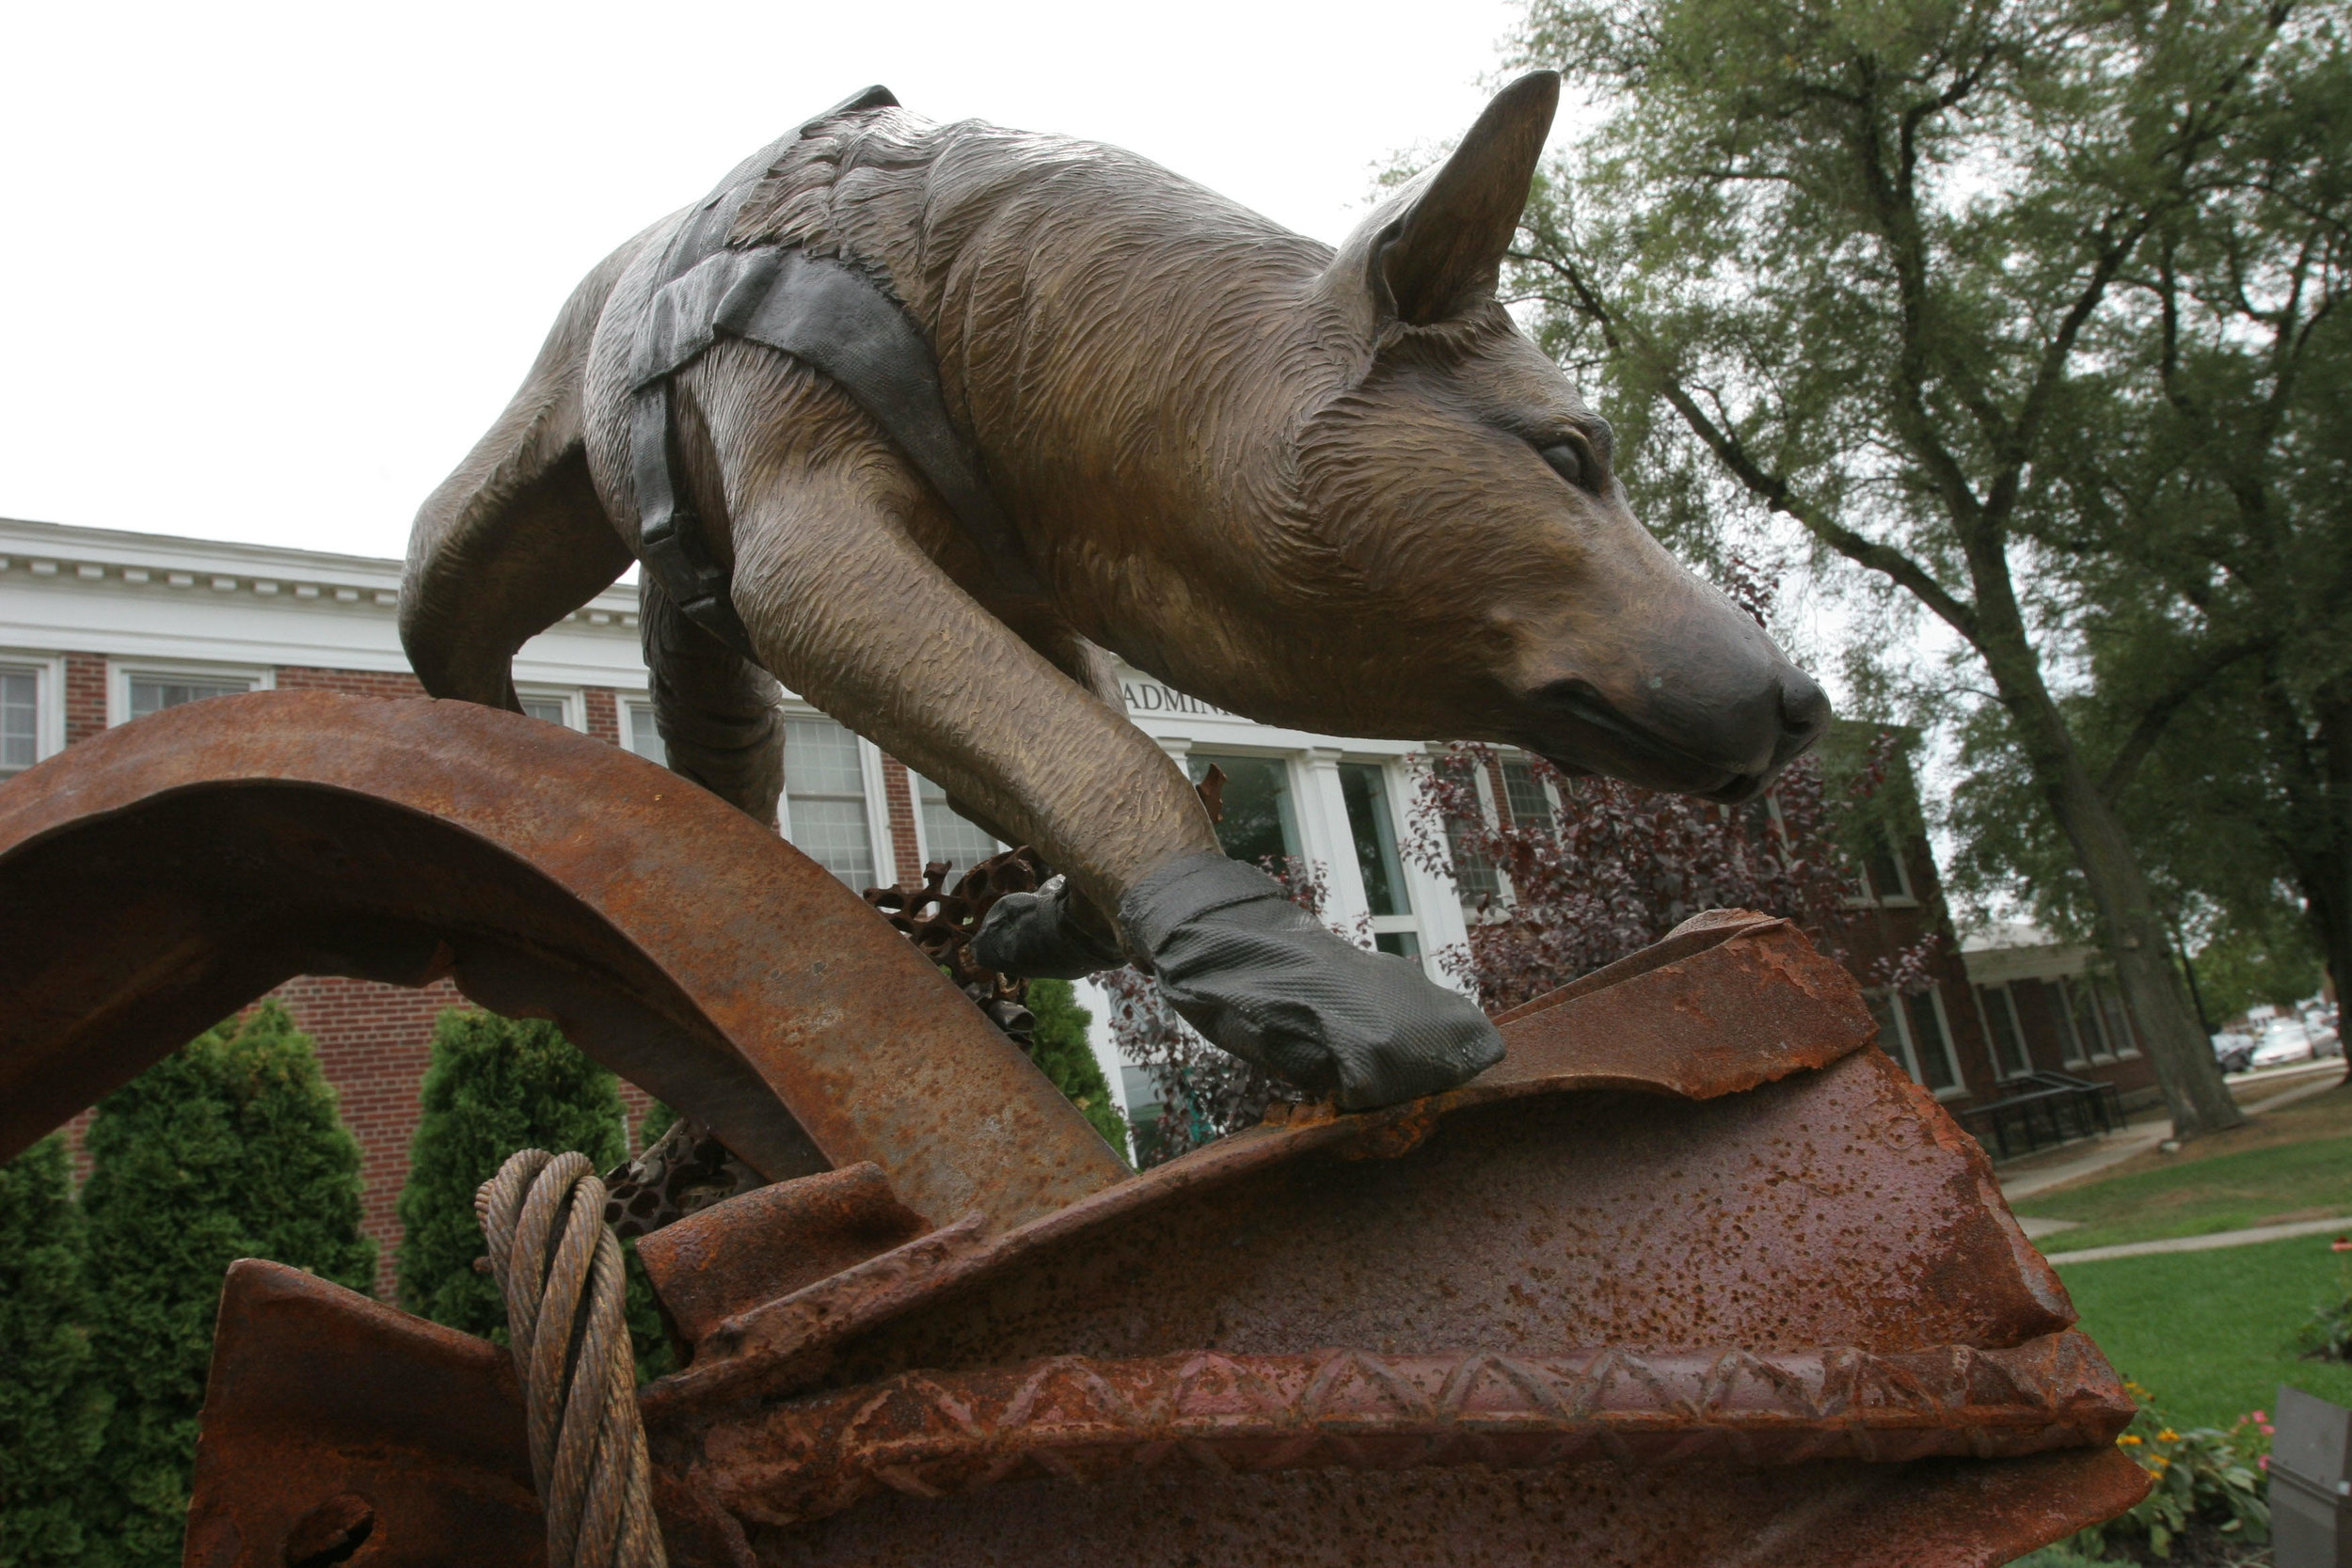 8/30/2005, Farmingdale. Photo shows 9/11 Memorial Garden. Bronze Sculpture of rescue dog searching among some original rubble from ground zero by Liza Todd-Tivey. Photo: Phil Marino